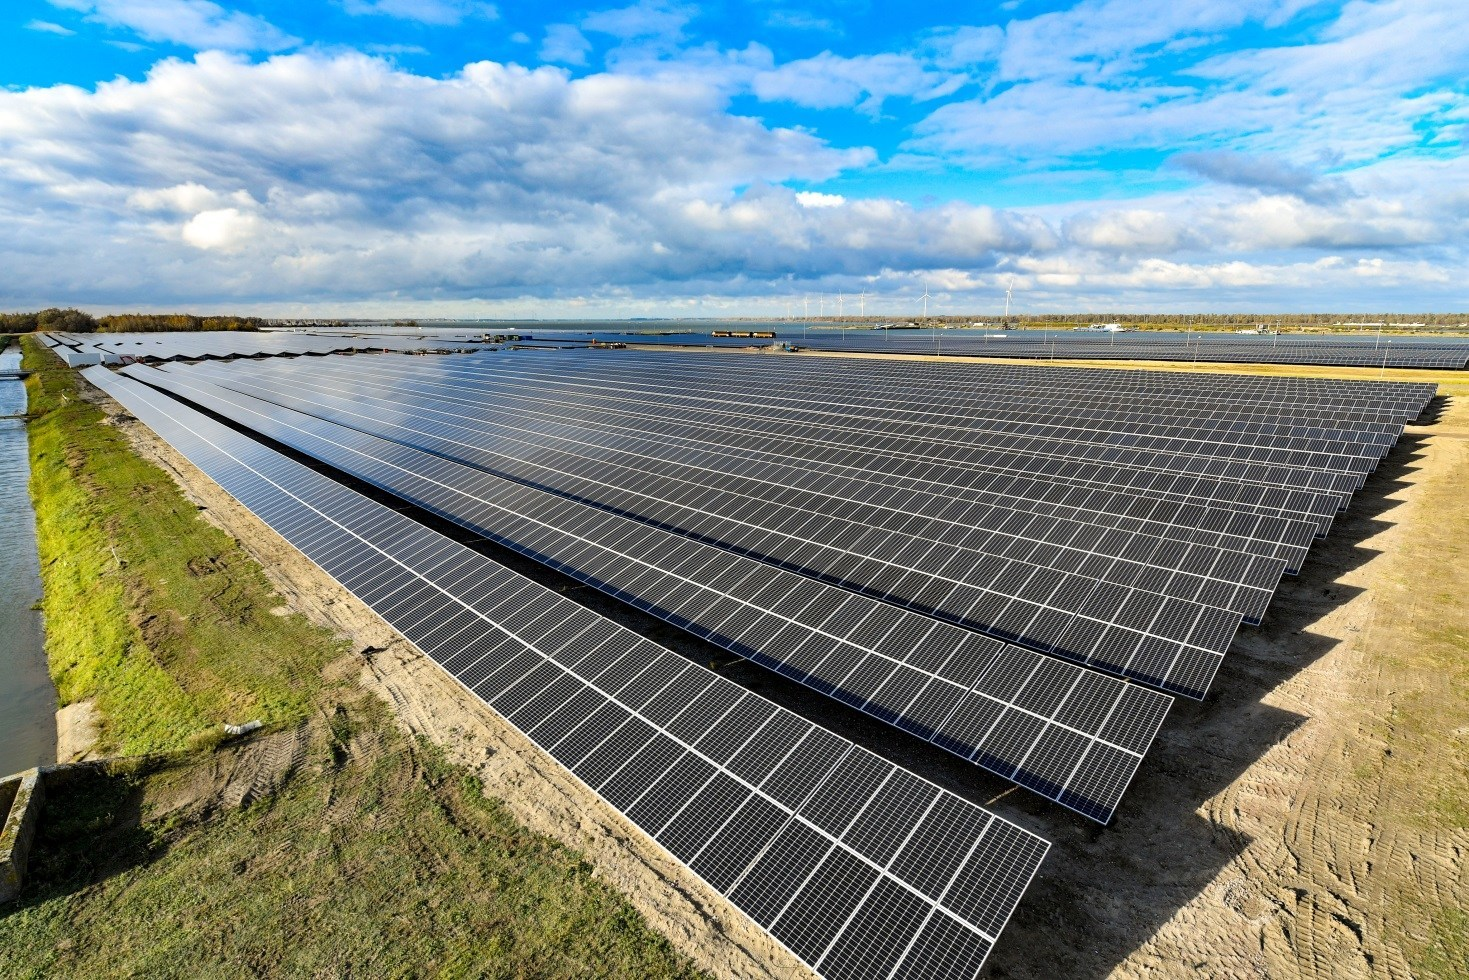 These PV modules installed at Shell's Moerdijk Solar Park are generating clean power that is equivalent to the energy consumption by 9,000 Dutch households. Image: Suntech